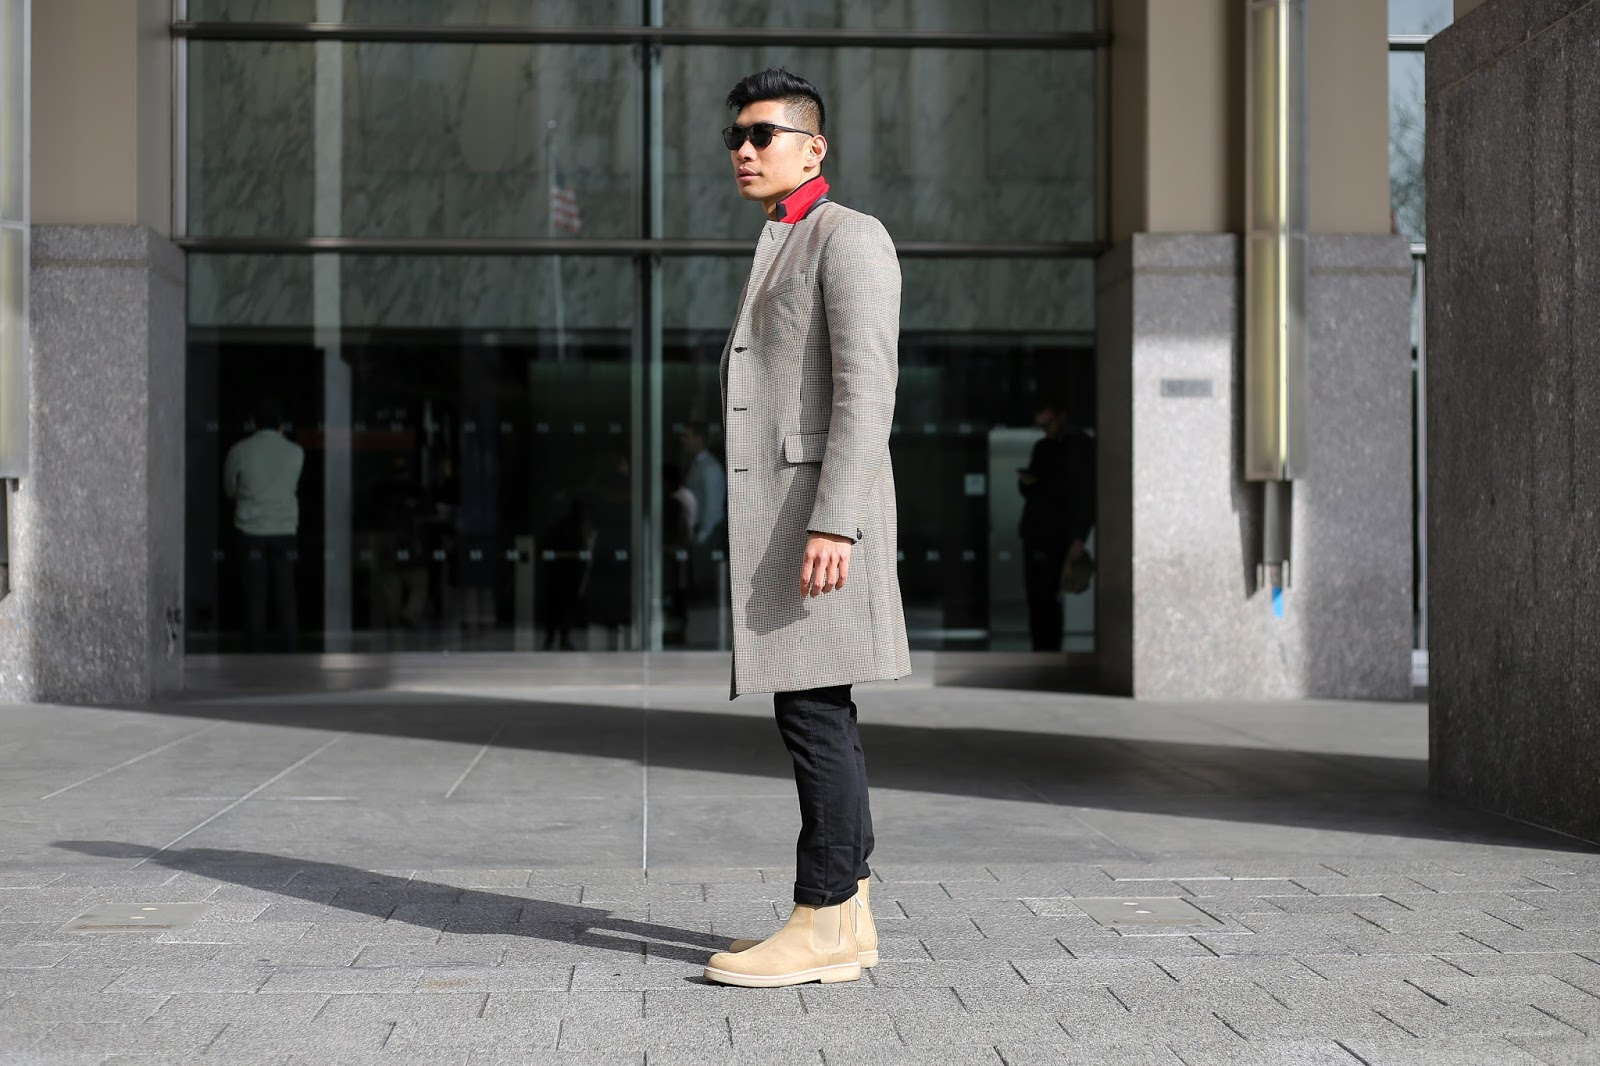 Levitate Style, menswear blogger, wearing Rag & Bone Dagger Topcoat and Striped Sweater, Commons Projects Chelsea Boots